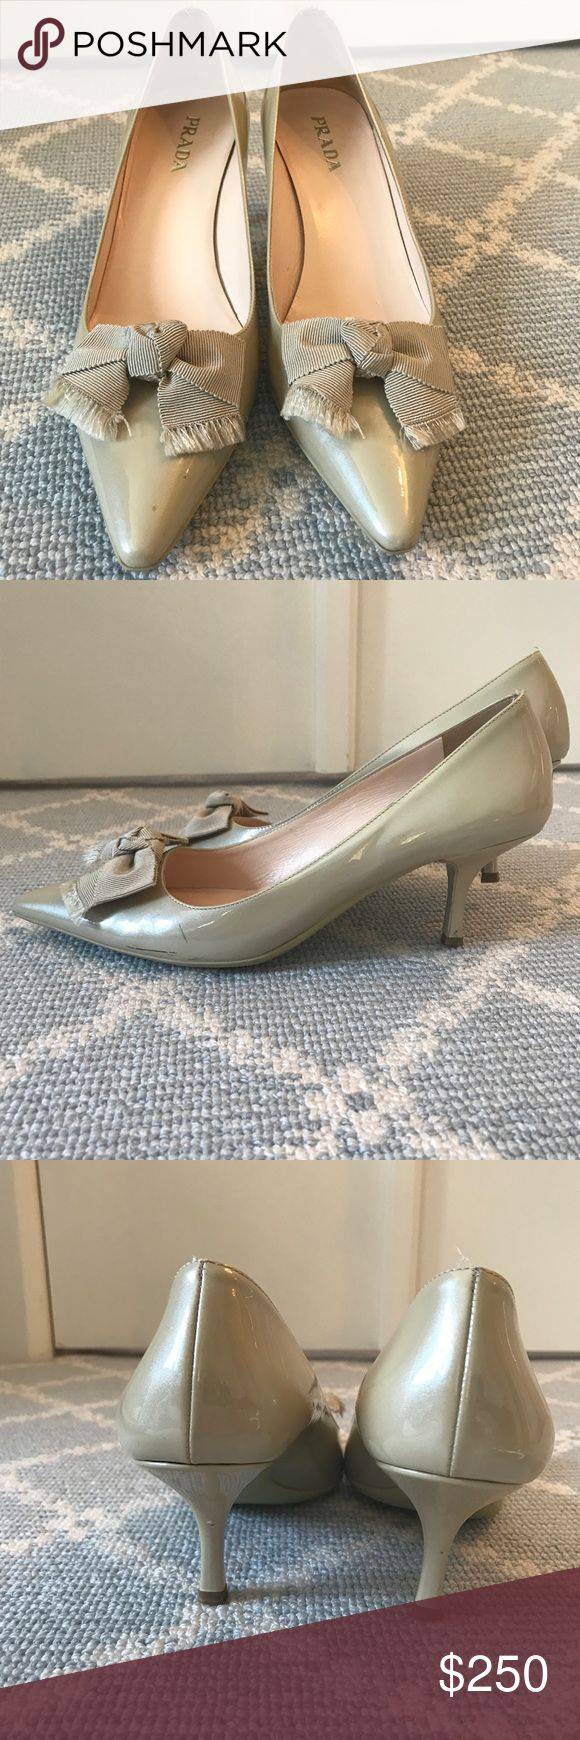 Selling this Taupe beige Prada shoes short heel size 38 1/2 on Poshmark! My username is: greenwichstyle. #shopmycloset #poshmark #fashion #shopping #style #forsale #Shoes